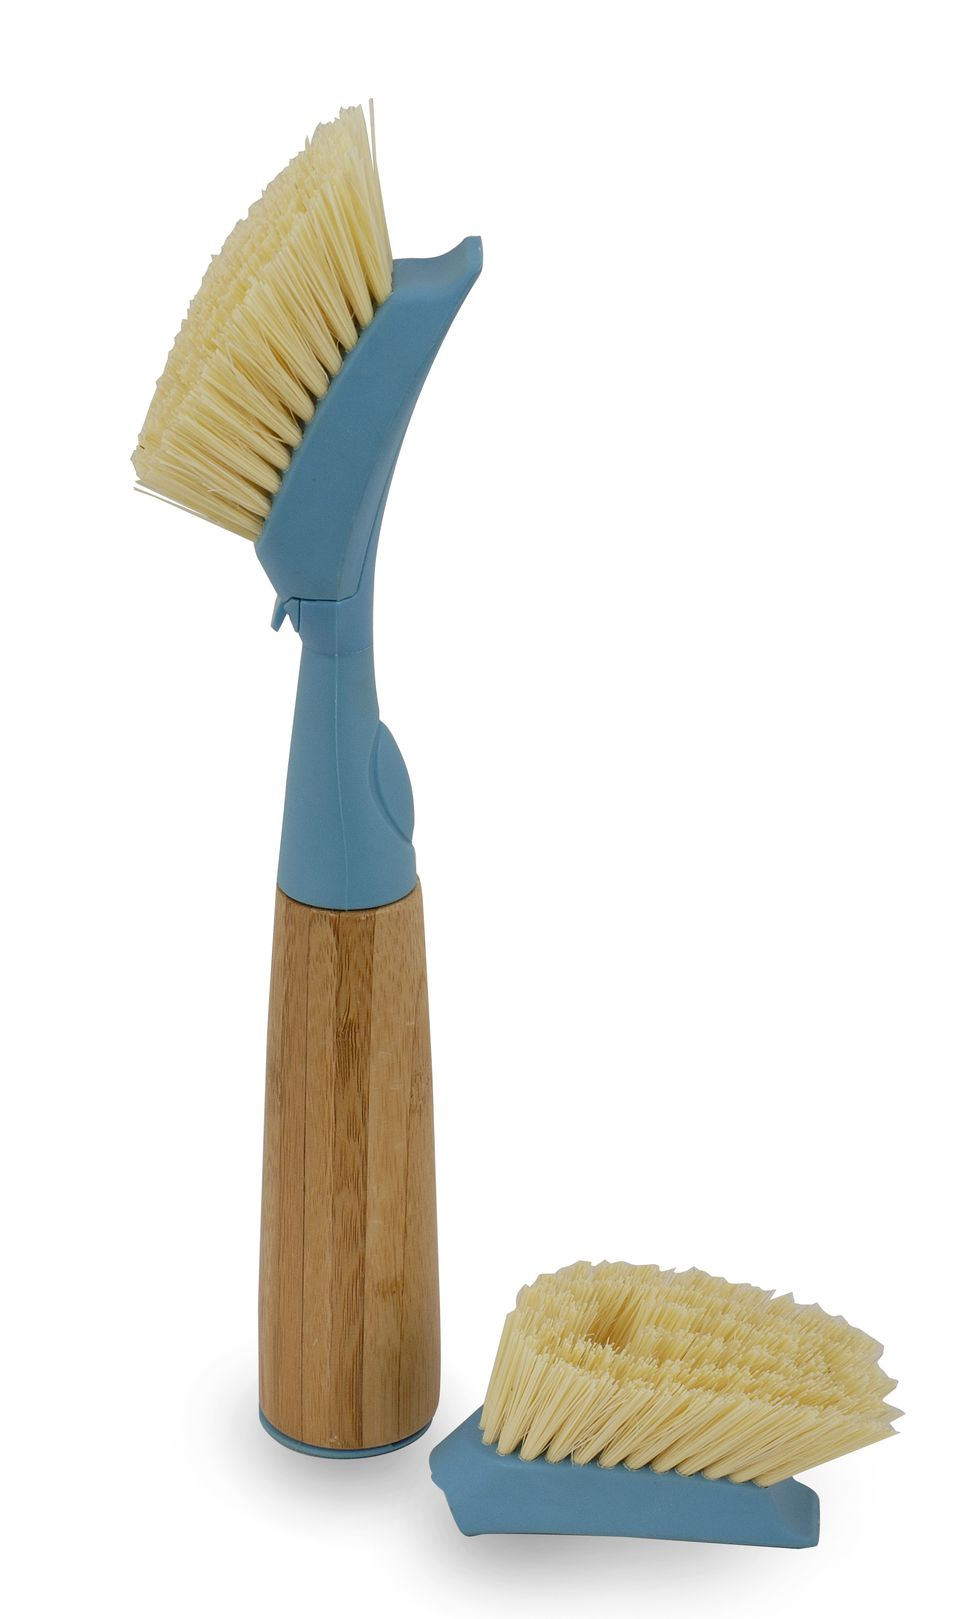 Photograph of Full Circle Suds Up Dish Brush